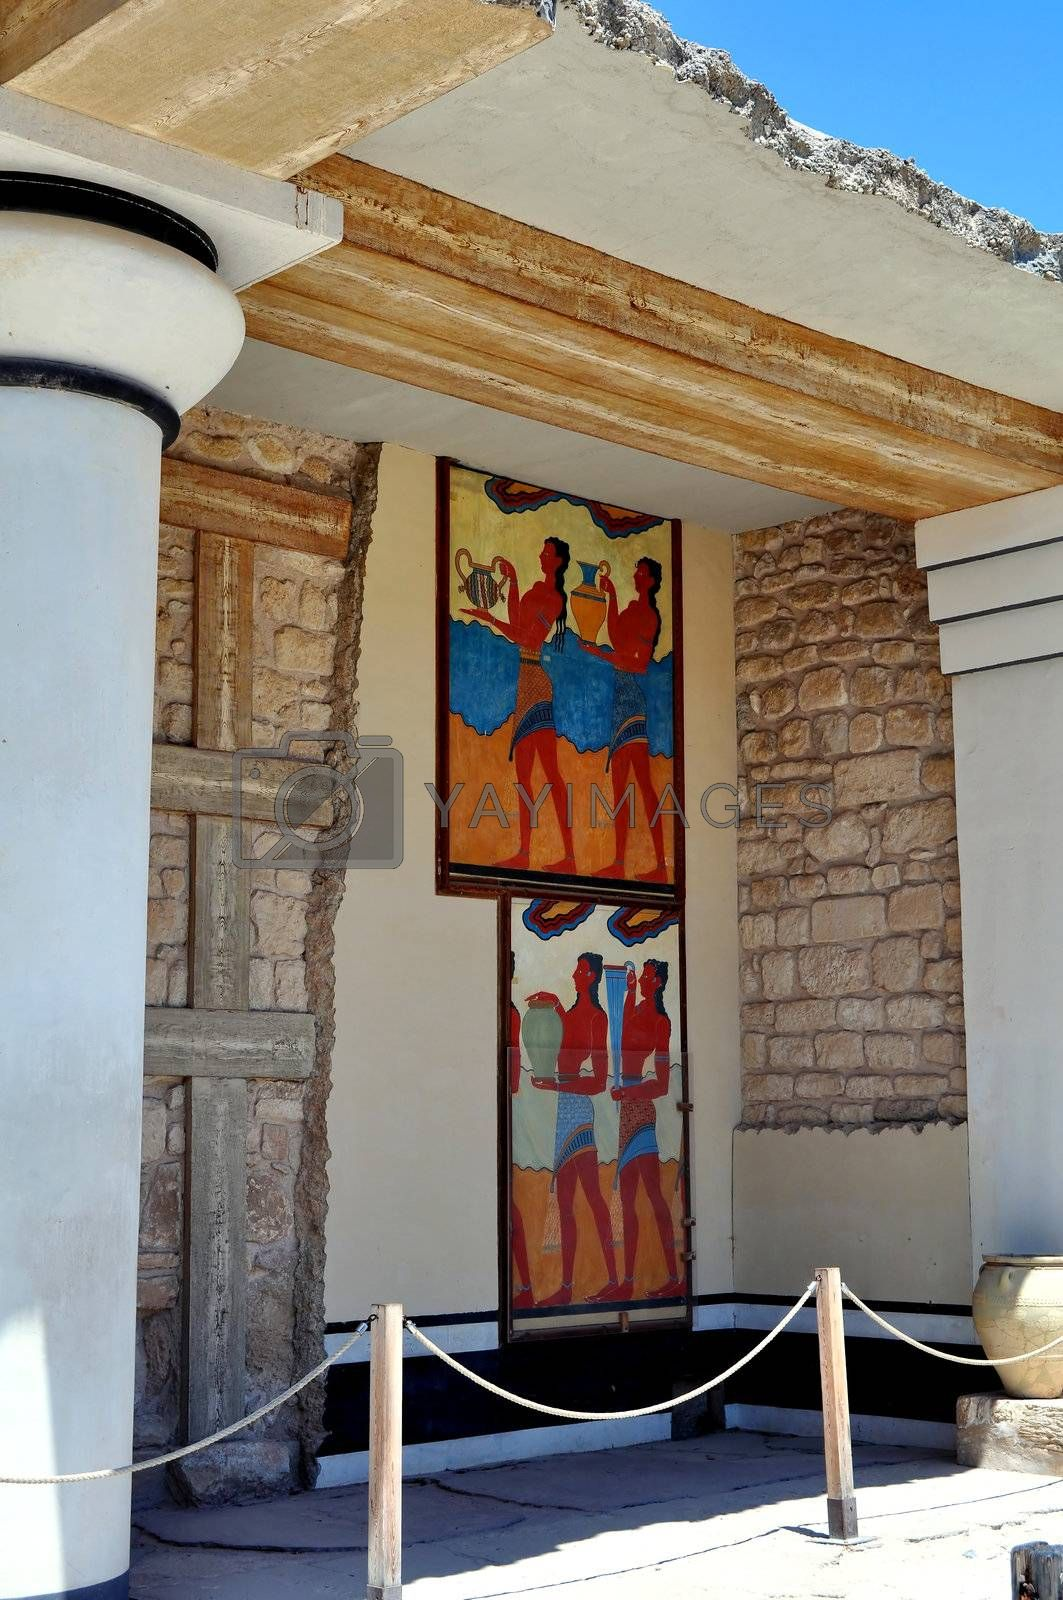 Royalty free image of Ancient ruins and frescos at the Knossos Palace in Crete by FER737NG